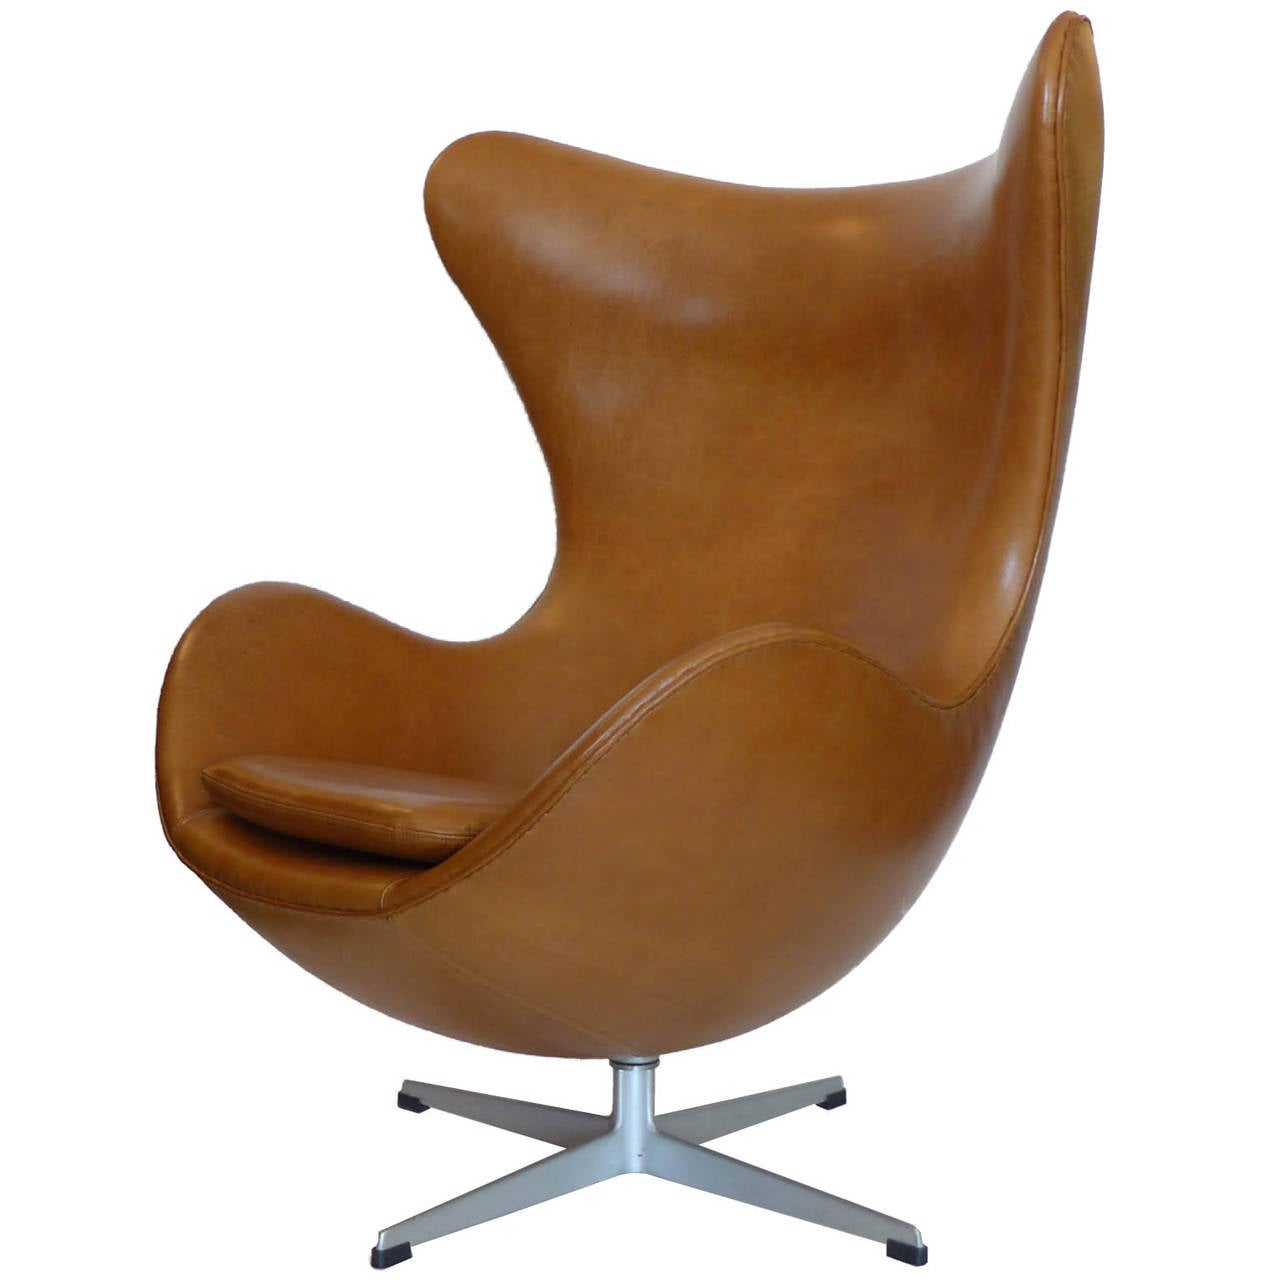 orange egg chair vanity chairs with casters original carmel tan and ottoman by arne jacobsen